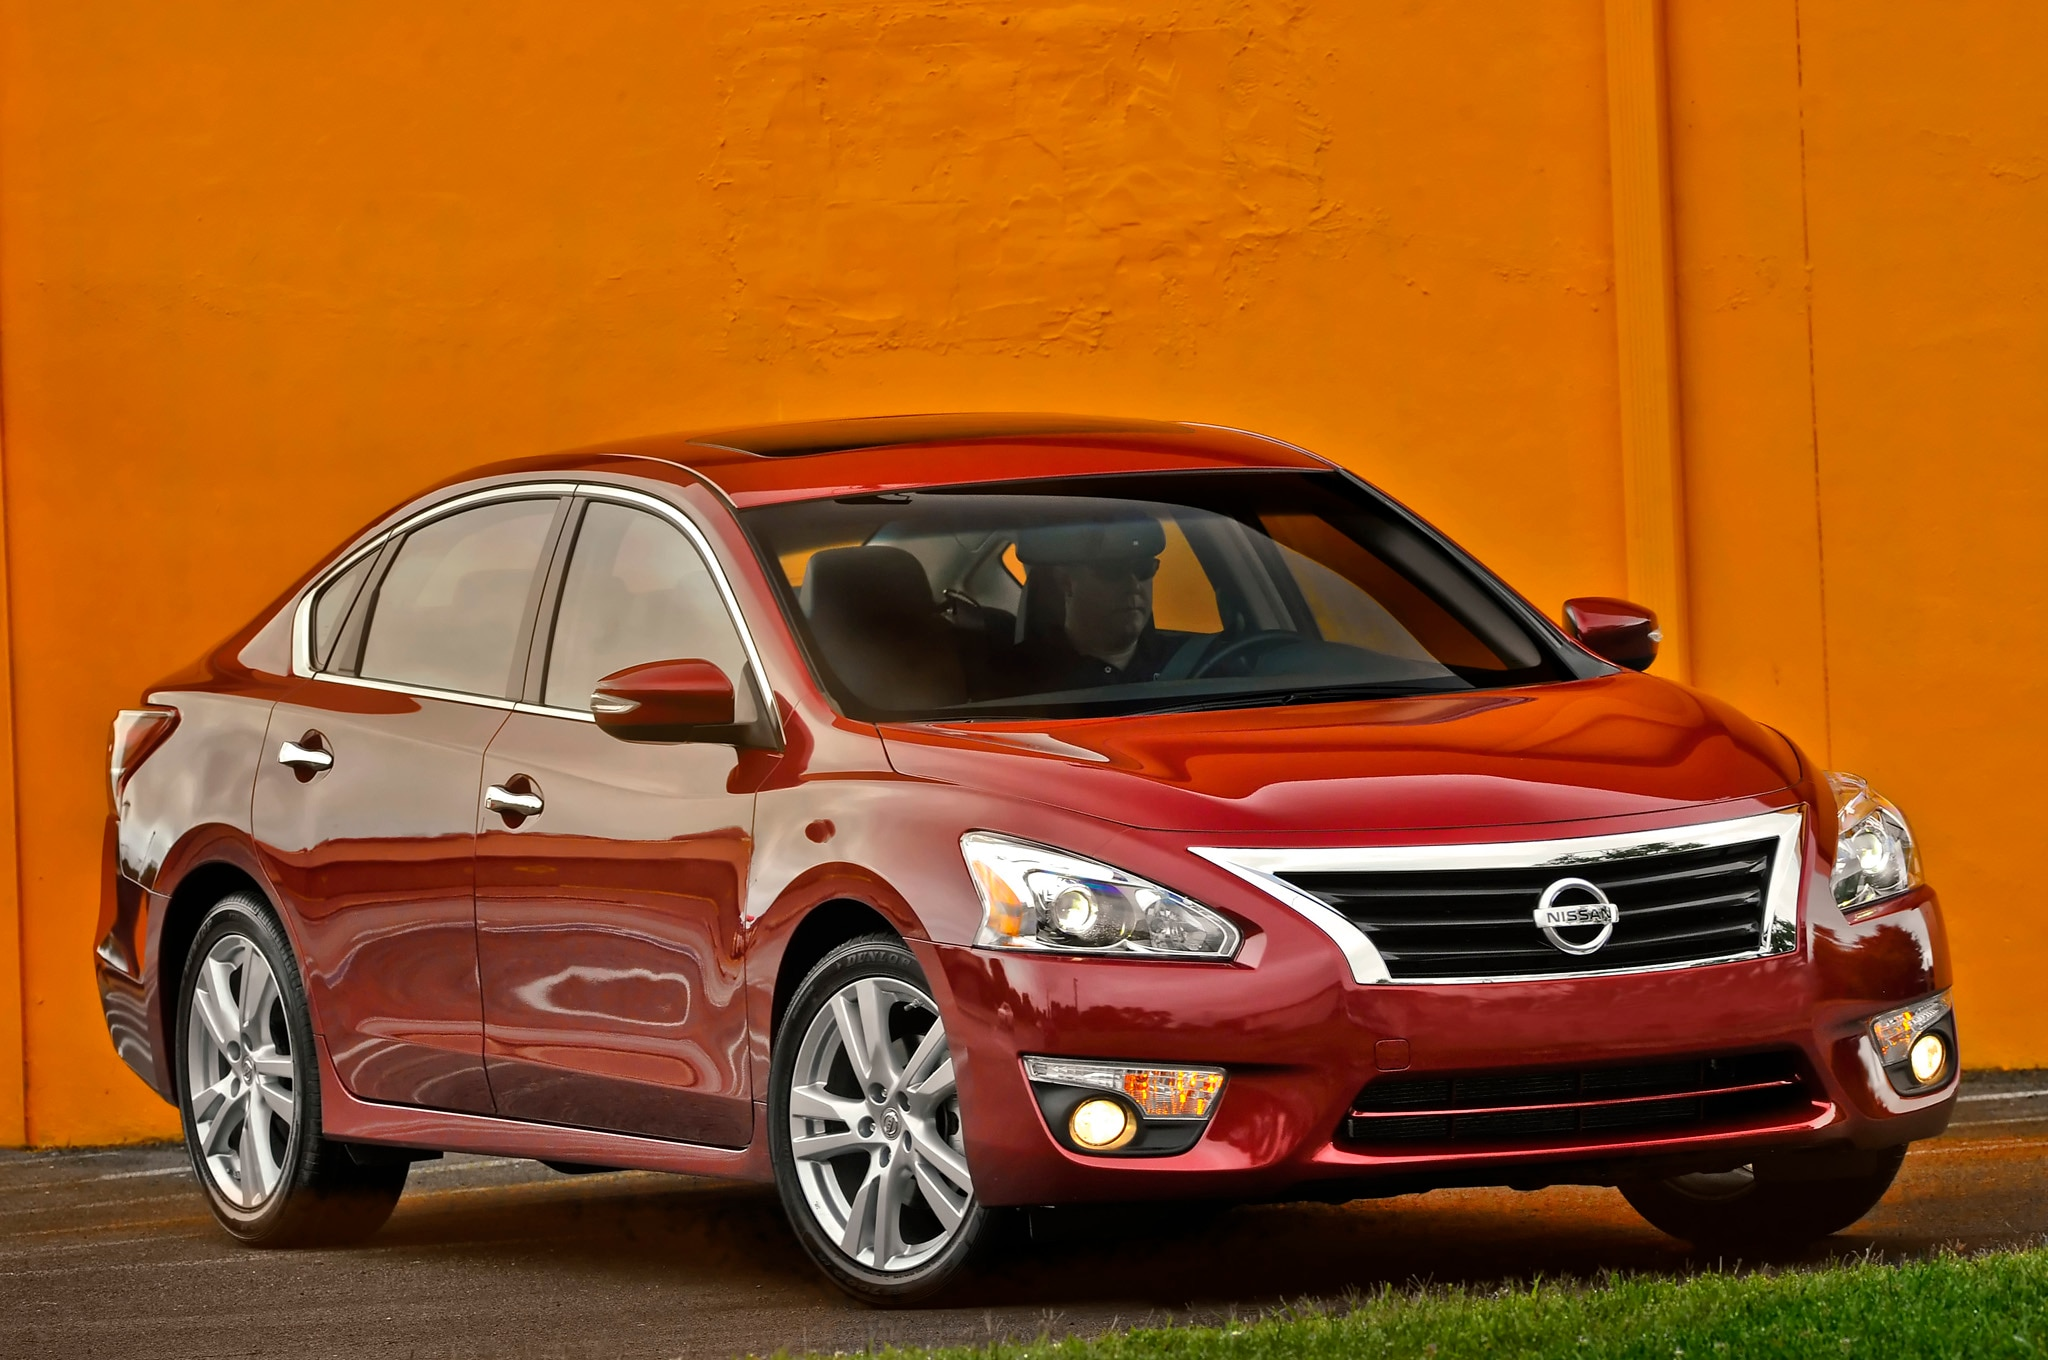 2014 Nissan Altima Front Three Quarters 21